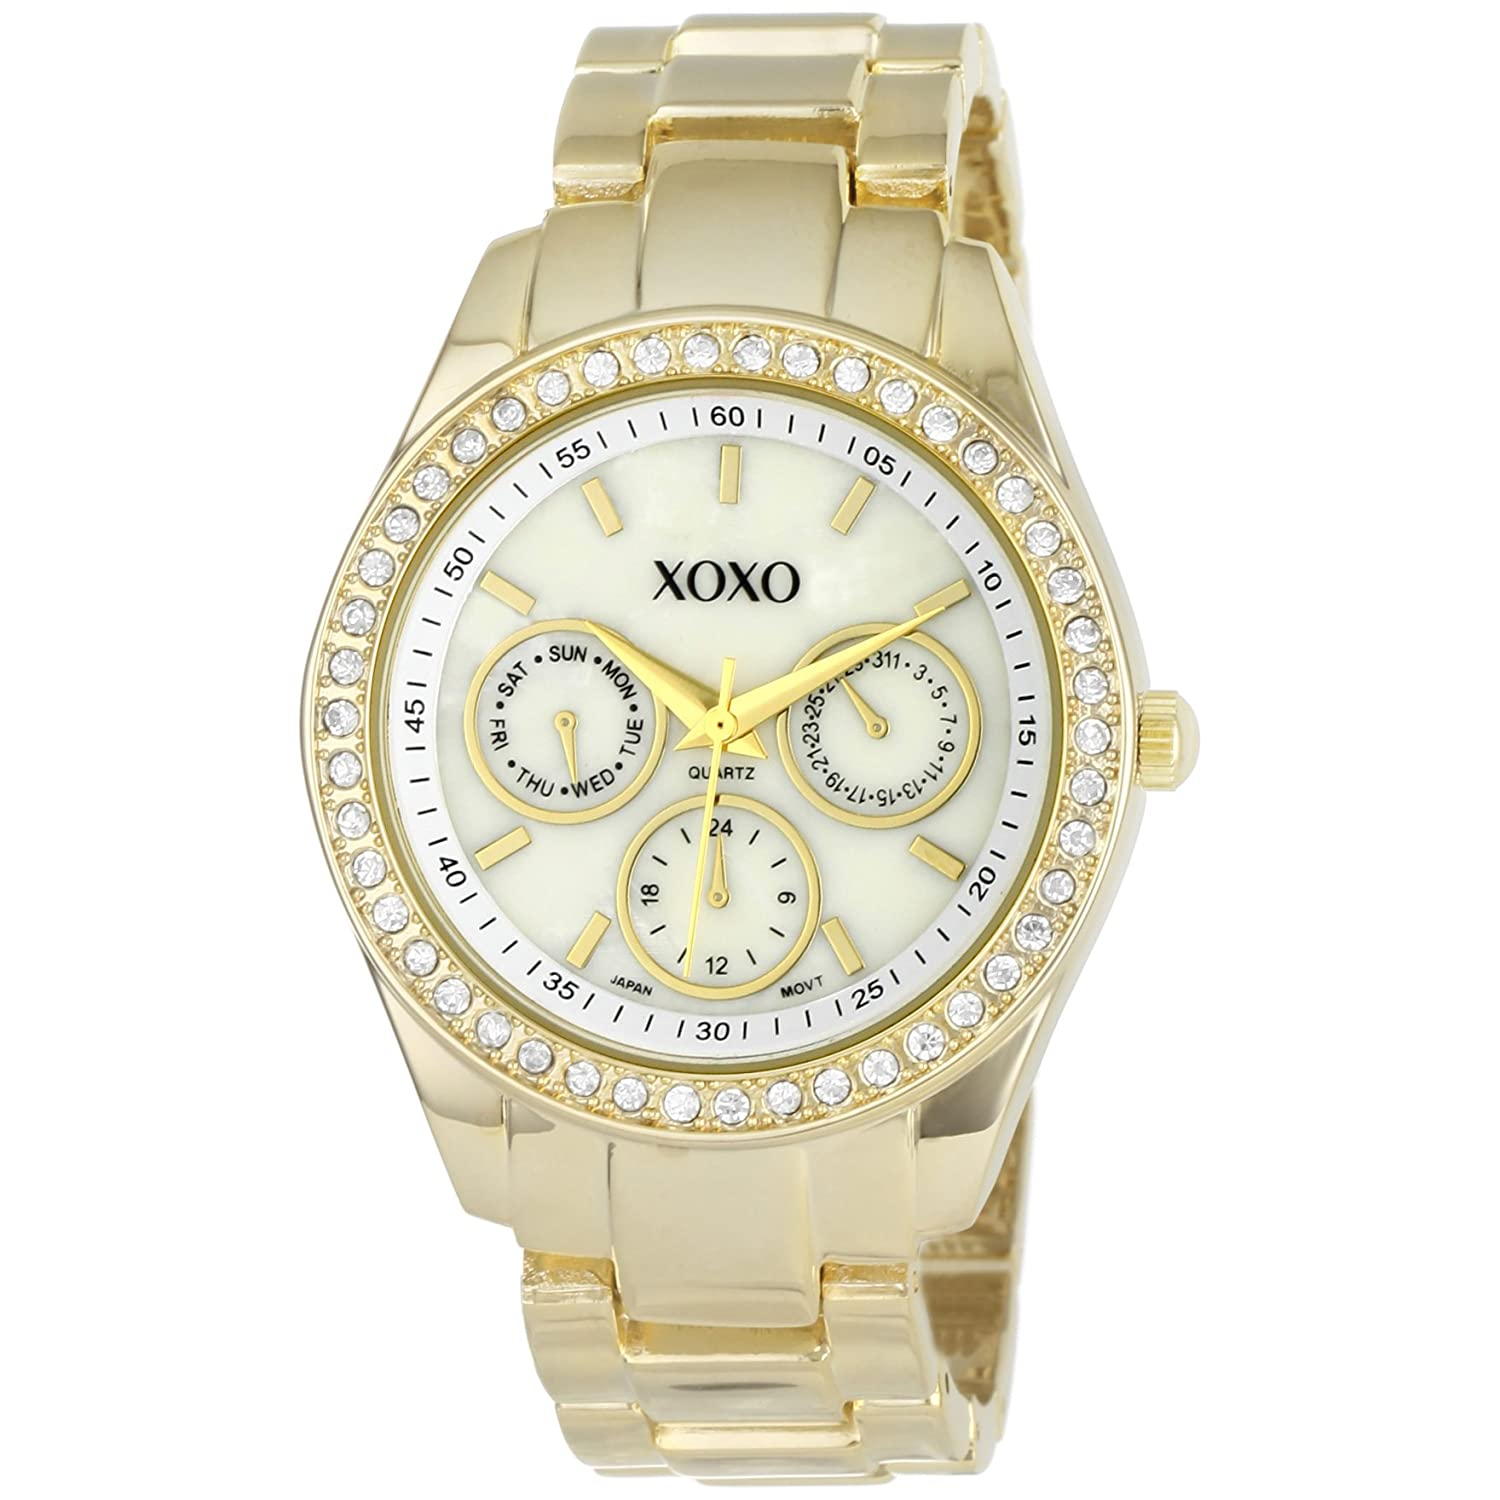 Women 39 s watches xoxo women 39 s xo5302a rhinestone accent gold tone bracelet watch was sold for for Watches xoxo